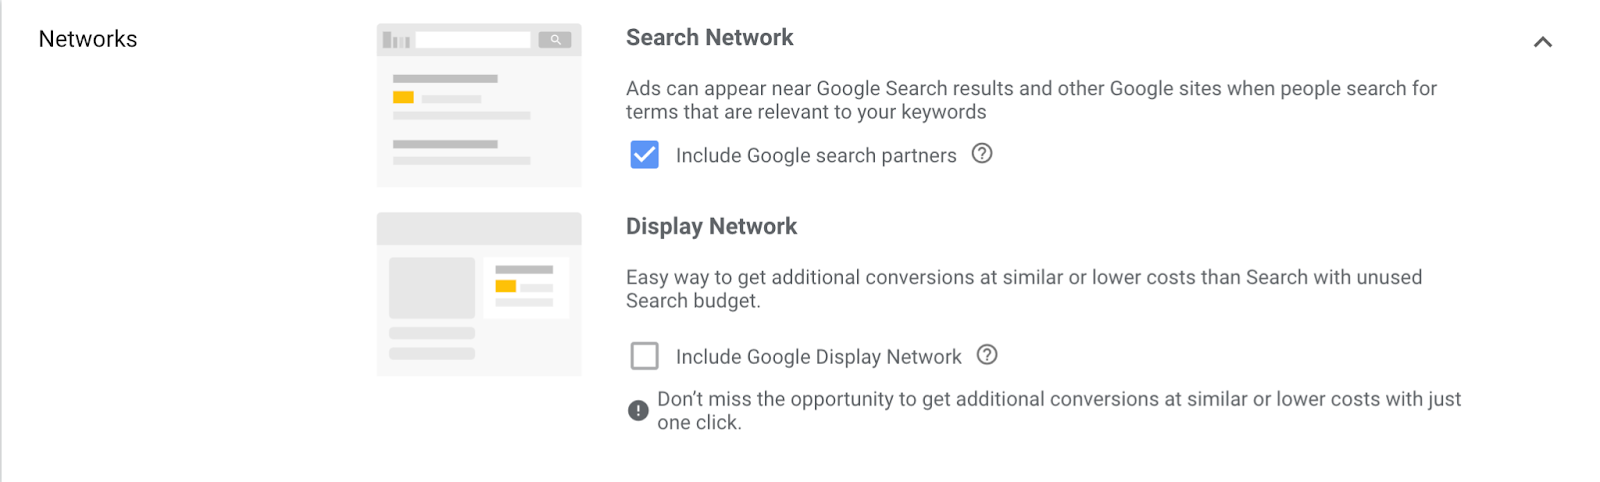 Search networks